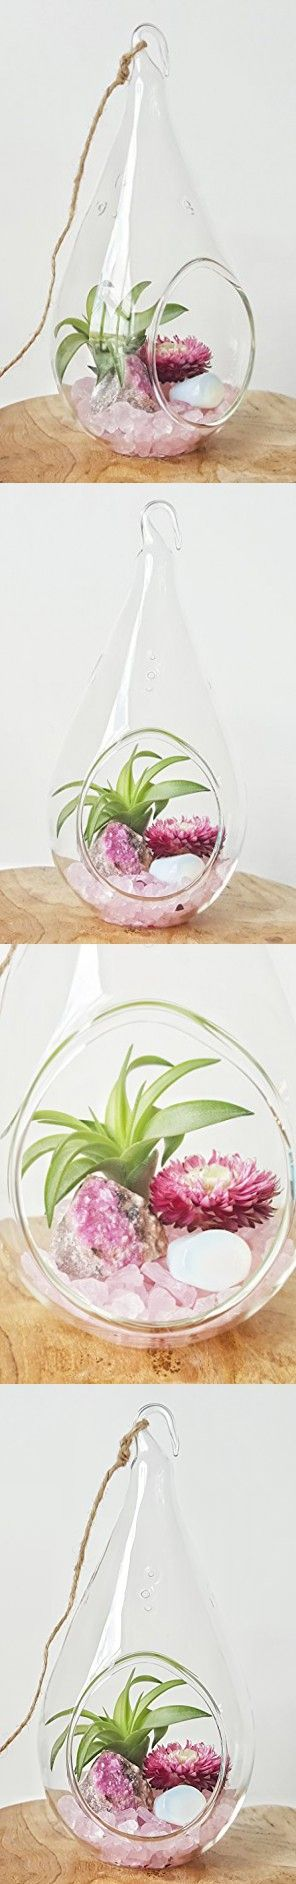 """Pink Cobaltoan Calicite and Opalite Crystal Healing Air Plant Terrarium Kit / 7.5"""" Clear Glass Hanging Terrarium, Healing Stones, and Tillandsia Plant"""